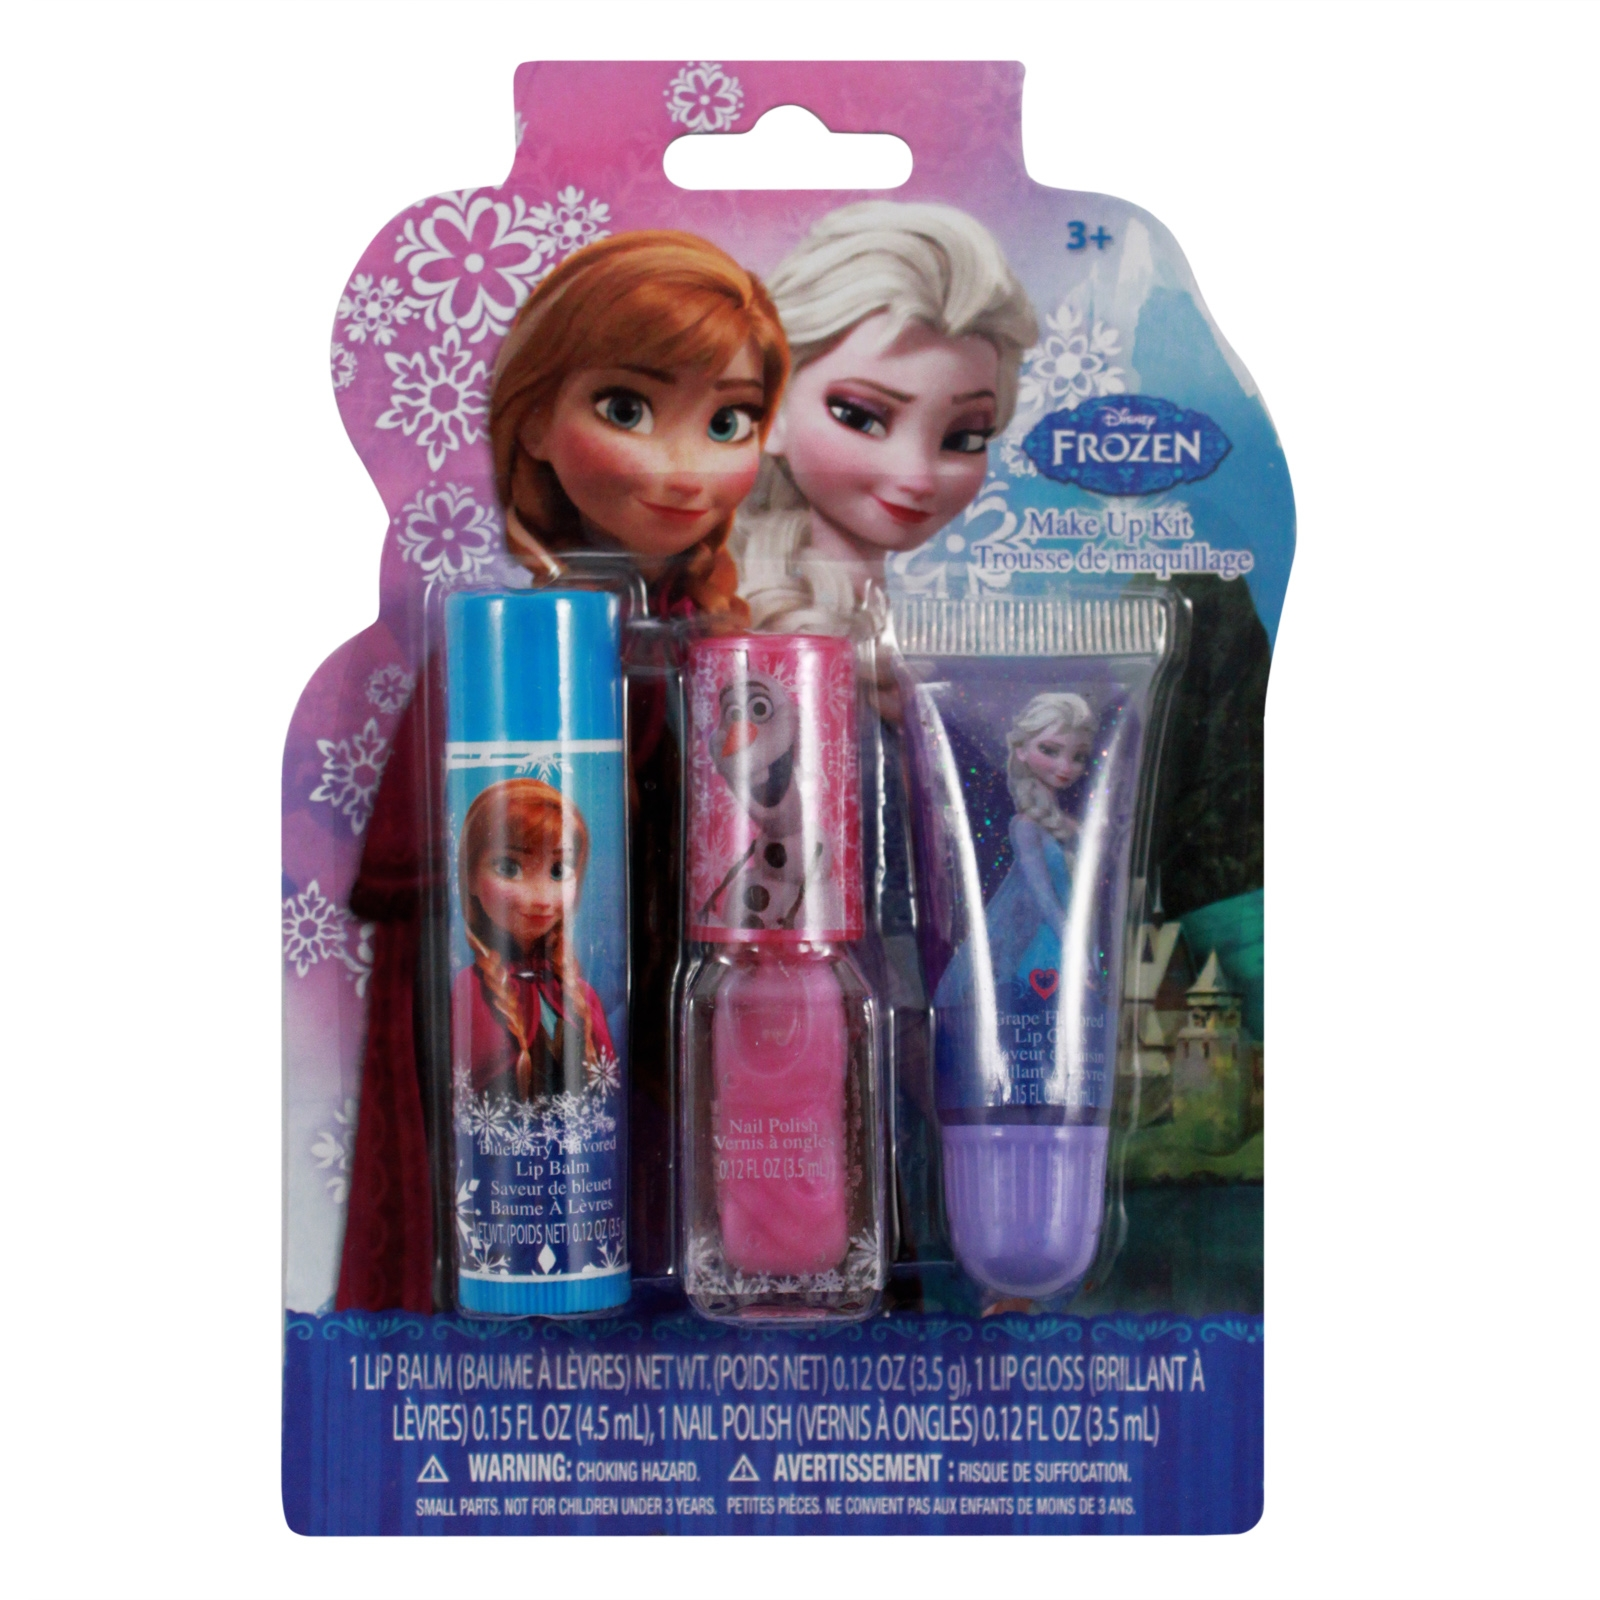 Disney's Frozen Beauty Cosmetic Set for Kids Disney Frozen Lip Balm and Lip Gloss with Cosmetic Bag in